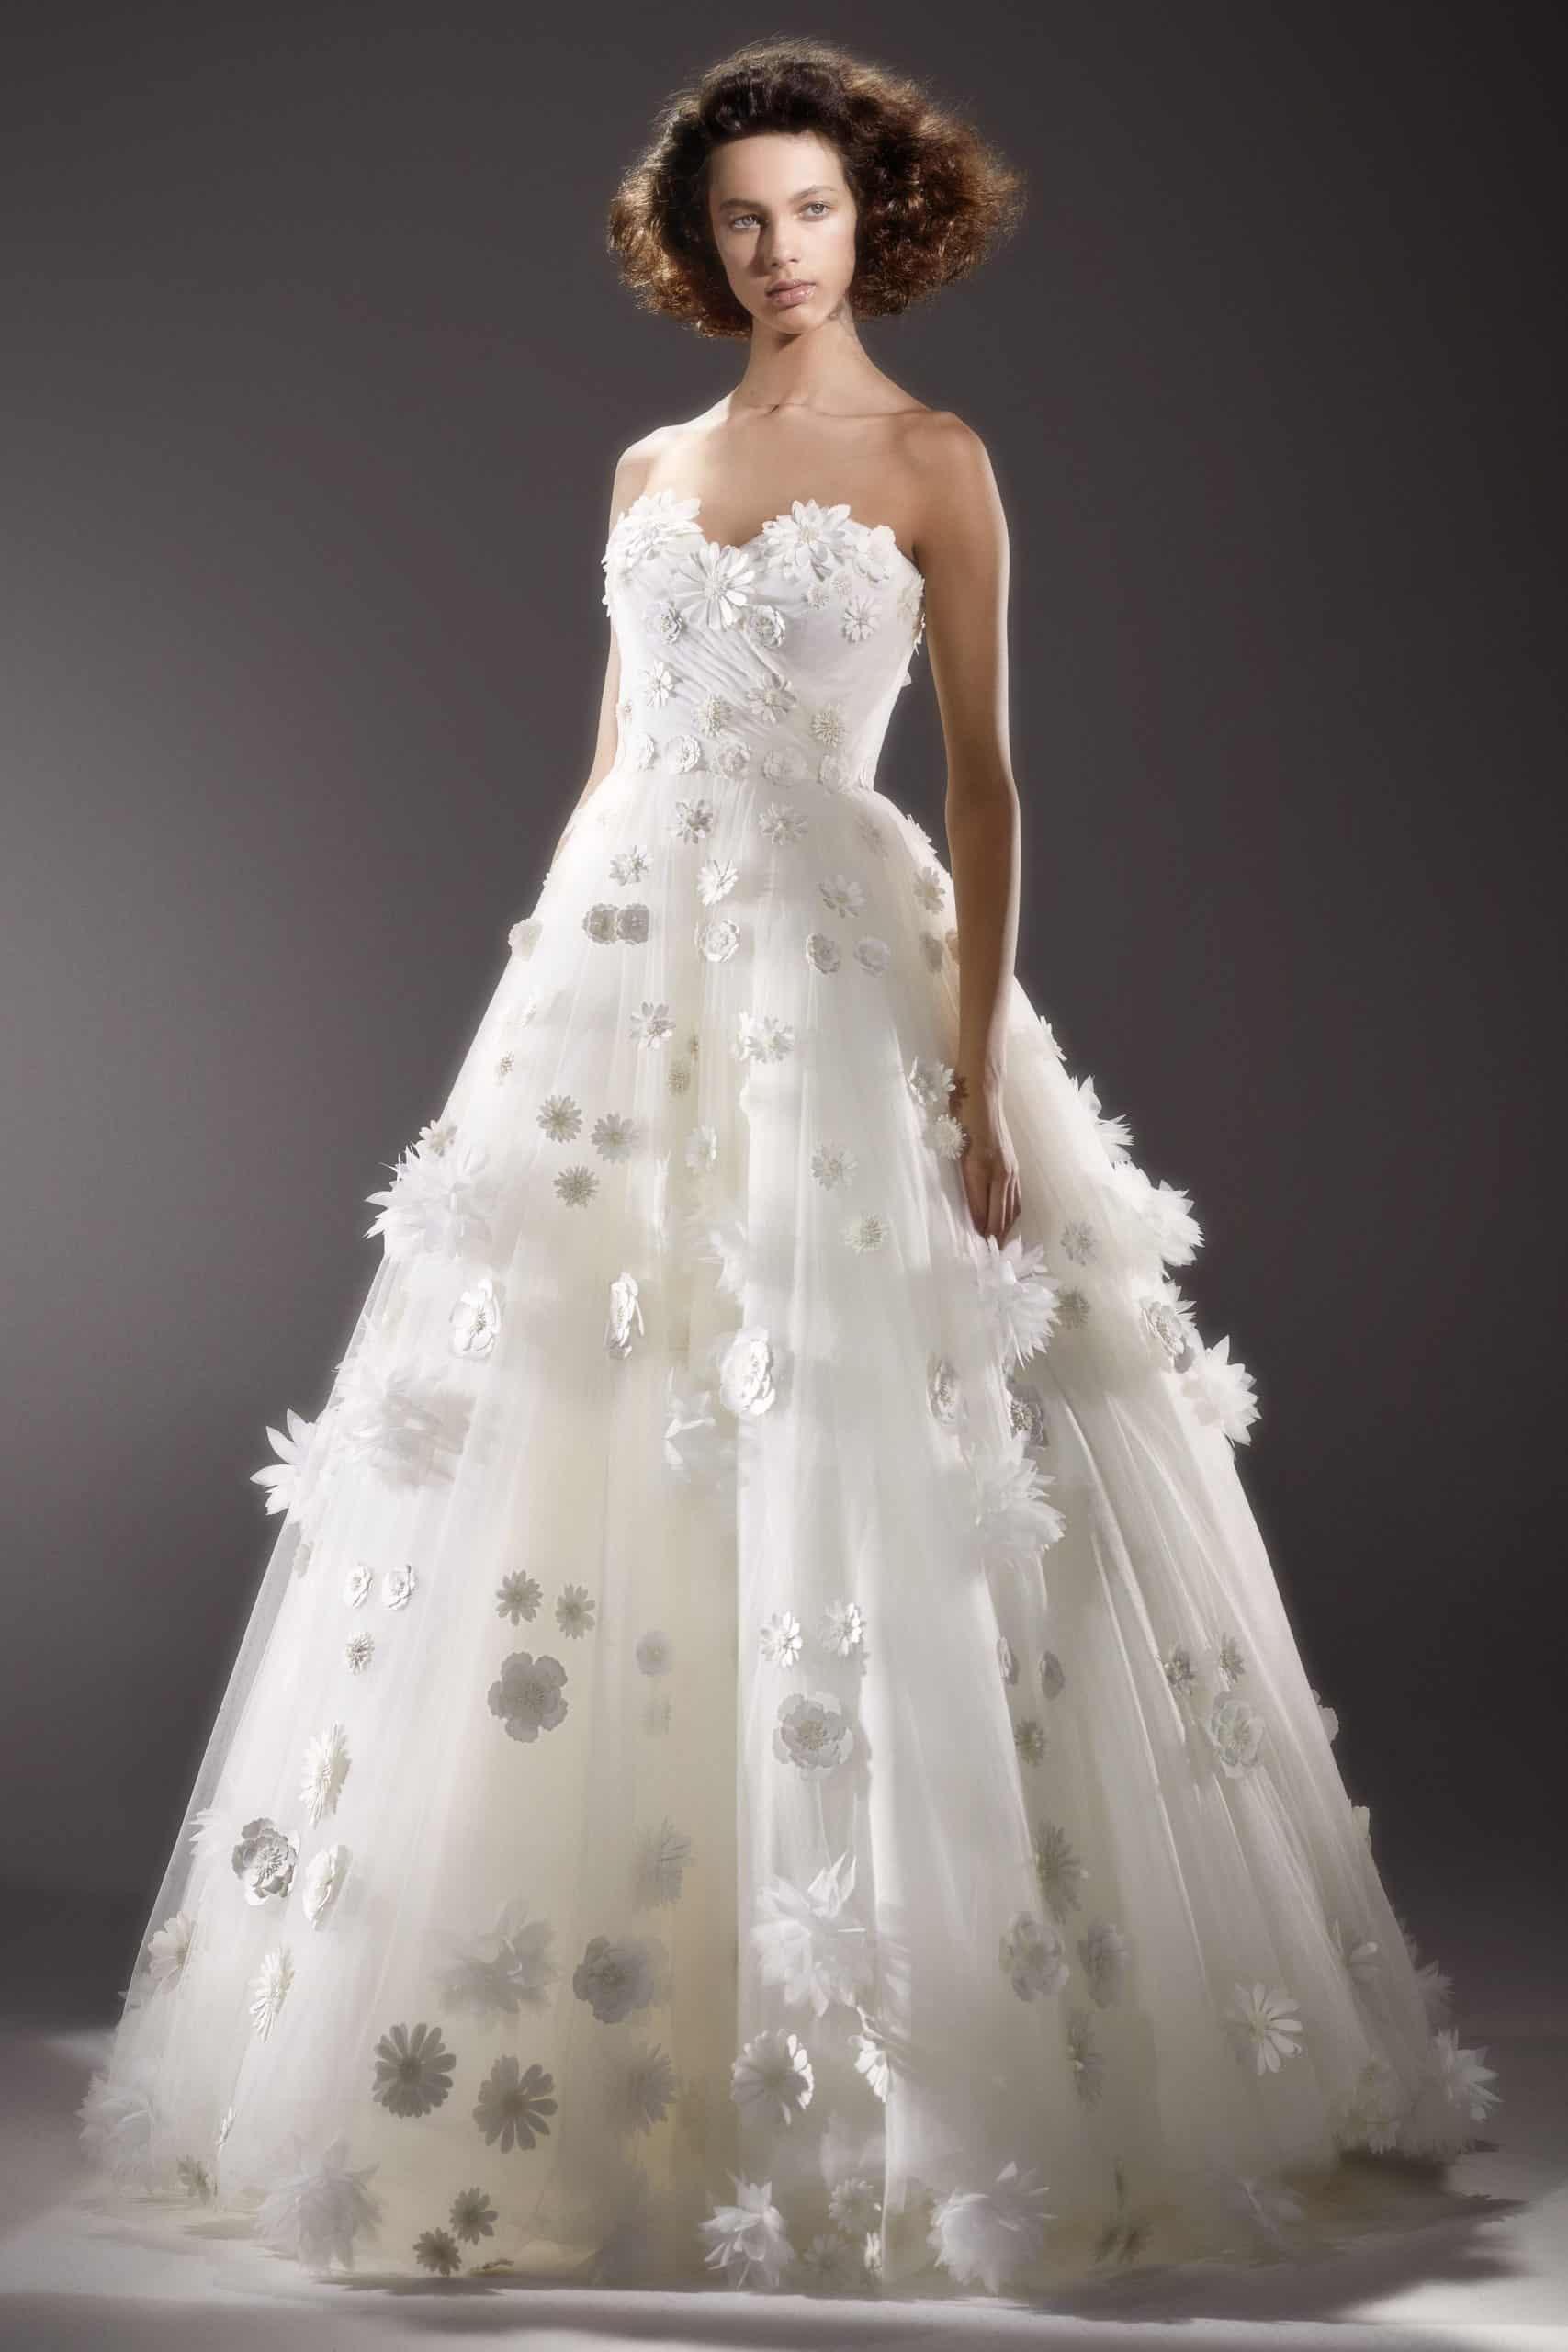 strapless wedding dress with embosses daisies by Viktor and Rolf